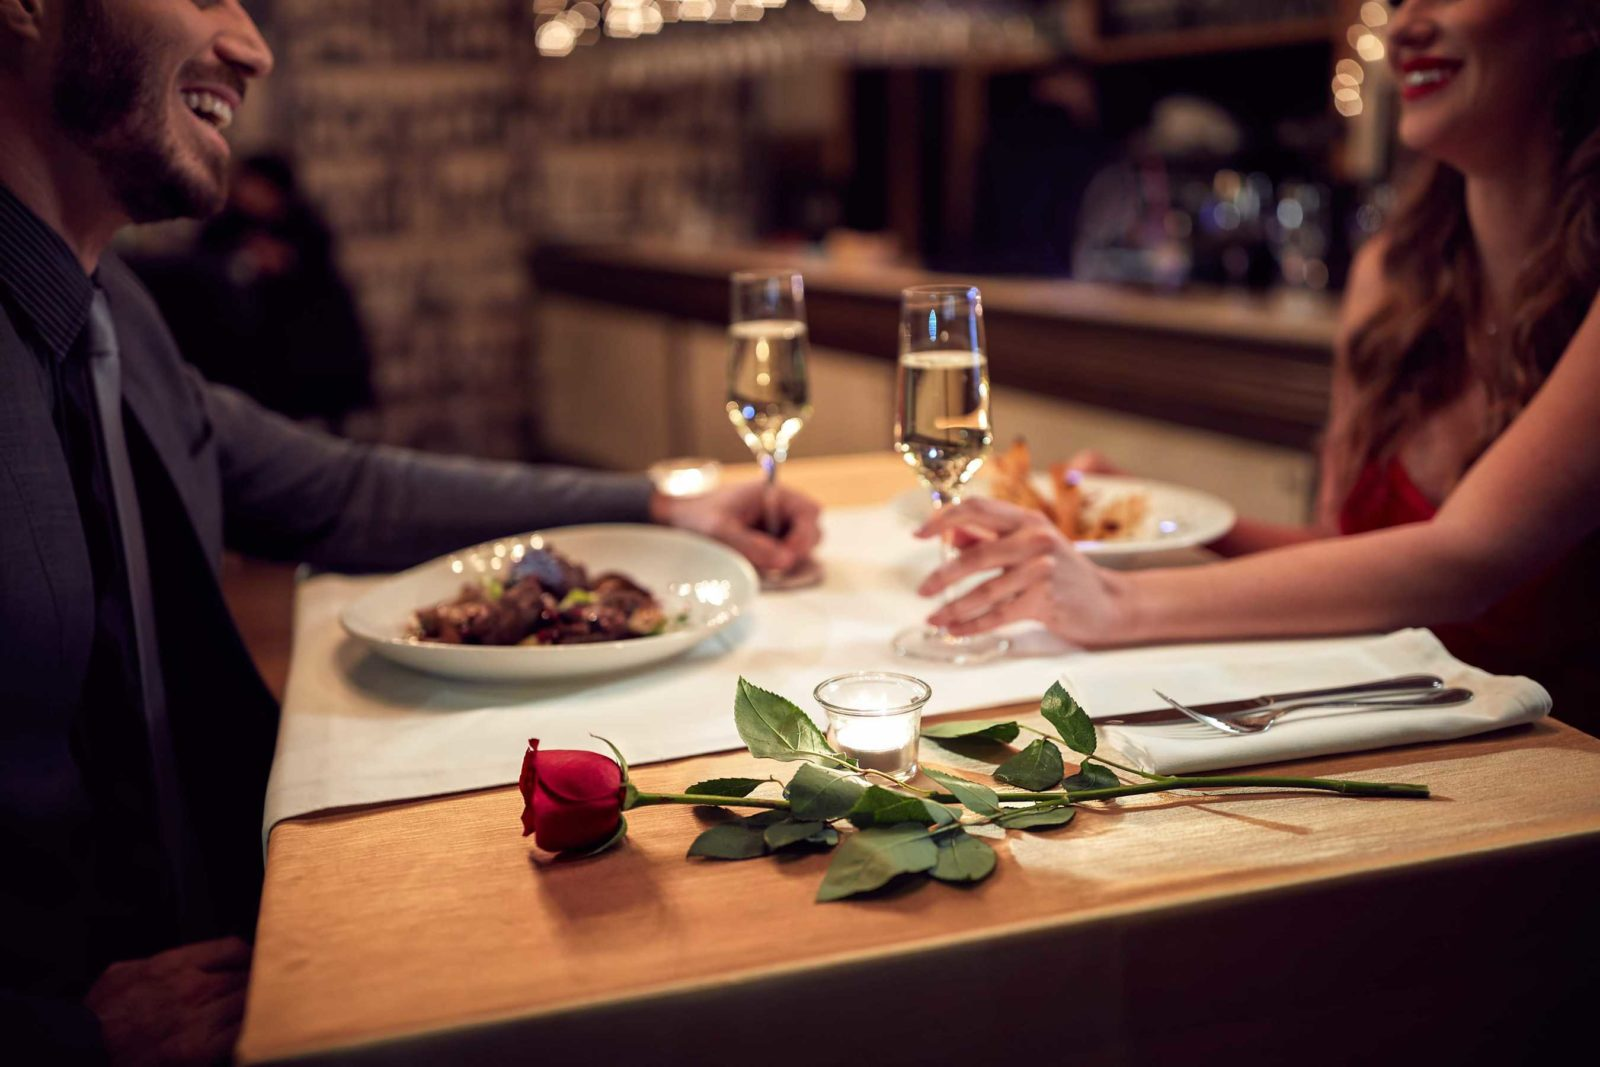 mep restaurant remodeling companies provide ambiance restaurant wall coverings for anniversary couple with wine and a rose